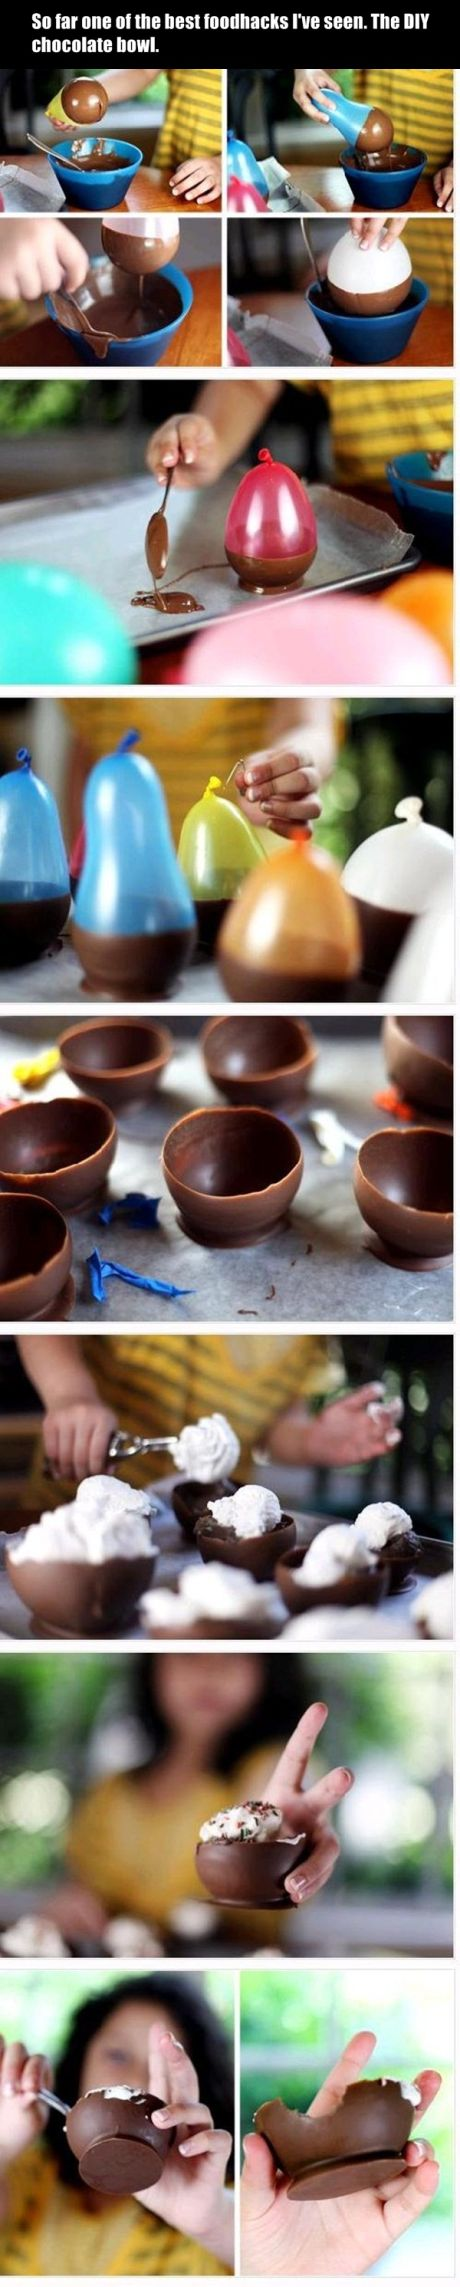 Best 10+ Chocolate bowls ideas on Pinterest | Creative desserts ...